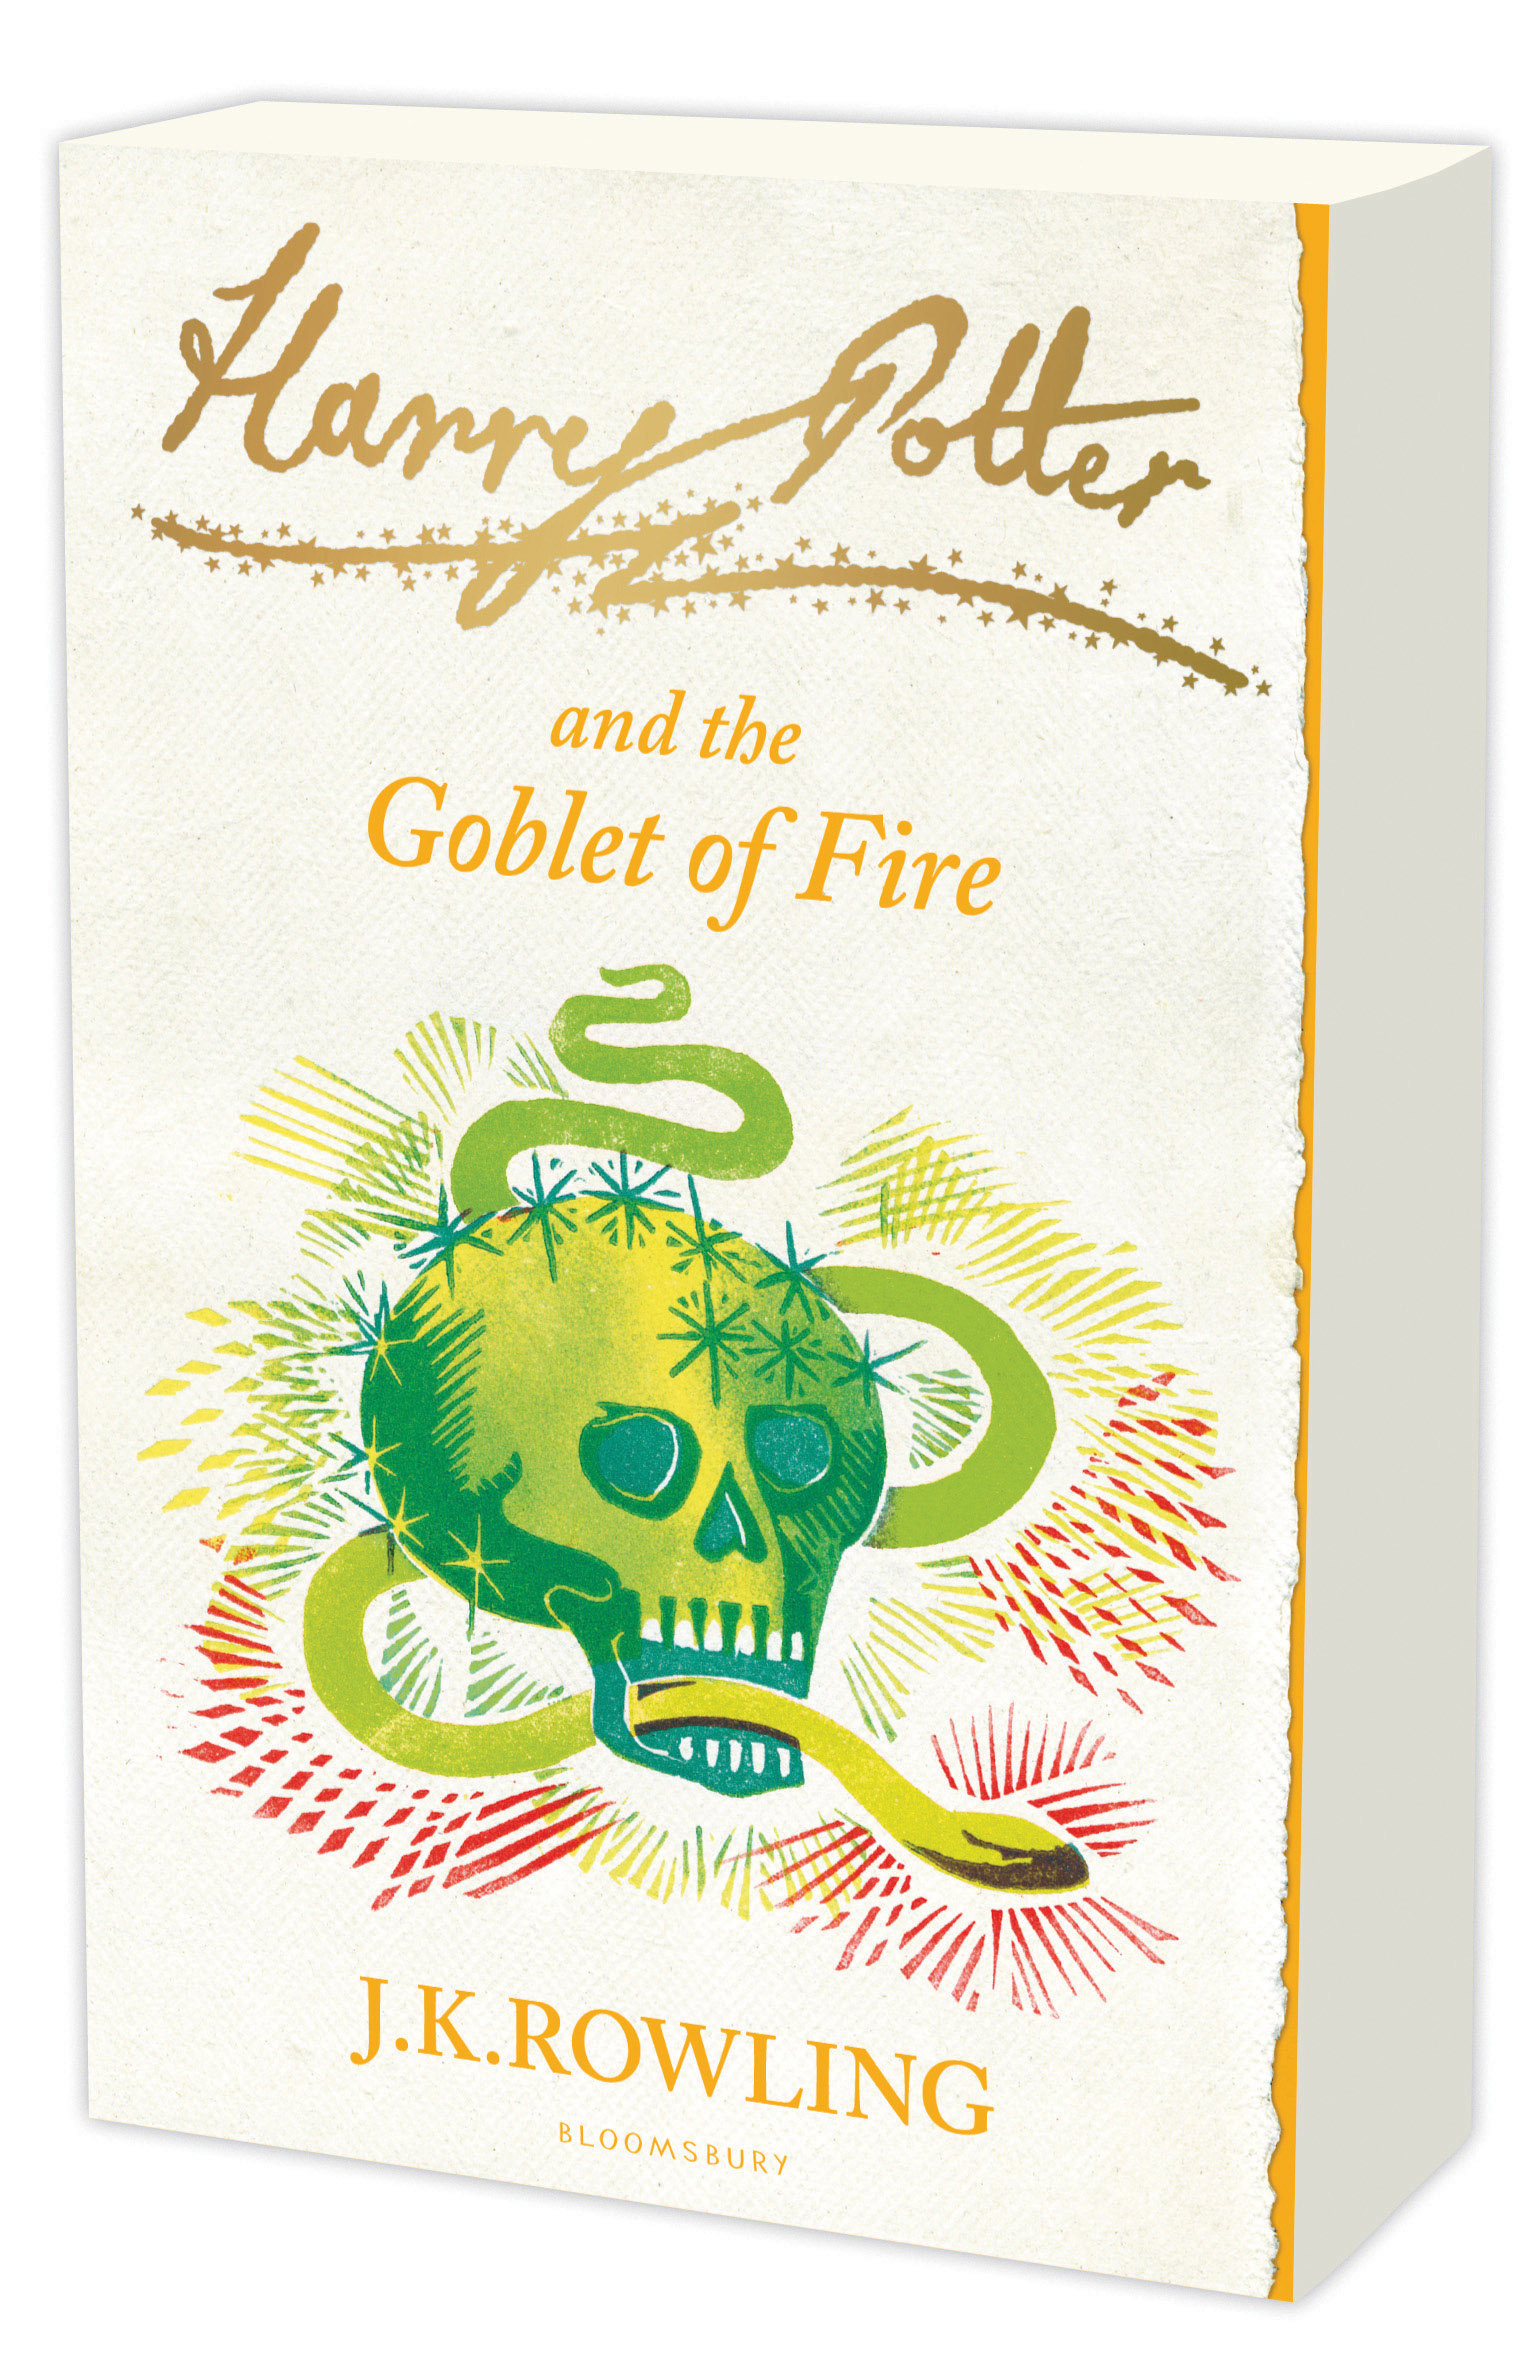 Harry Potter and the Goblet of Fire signature edition